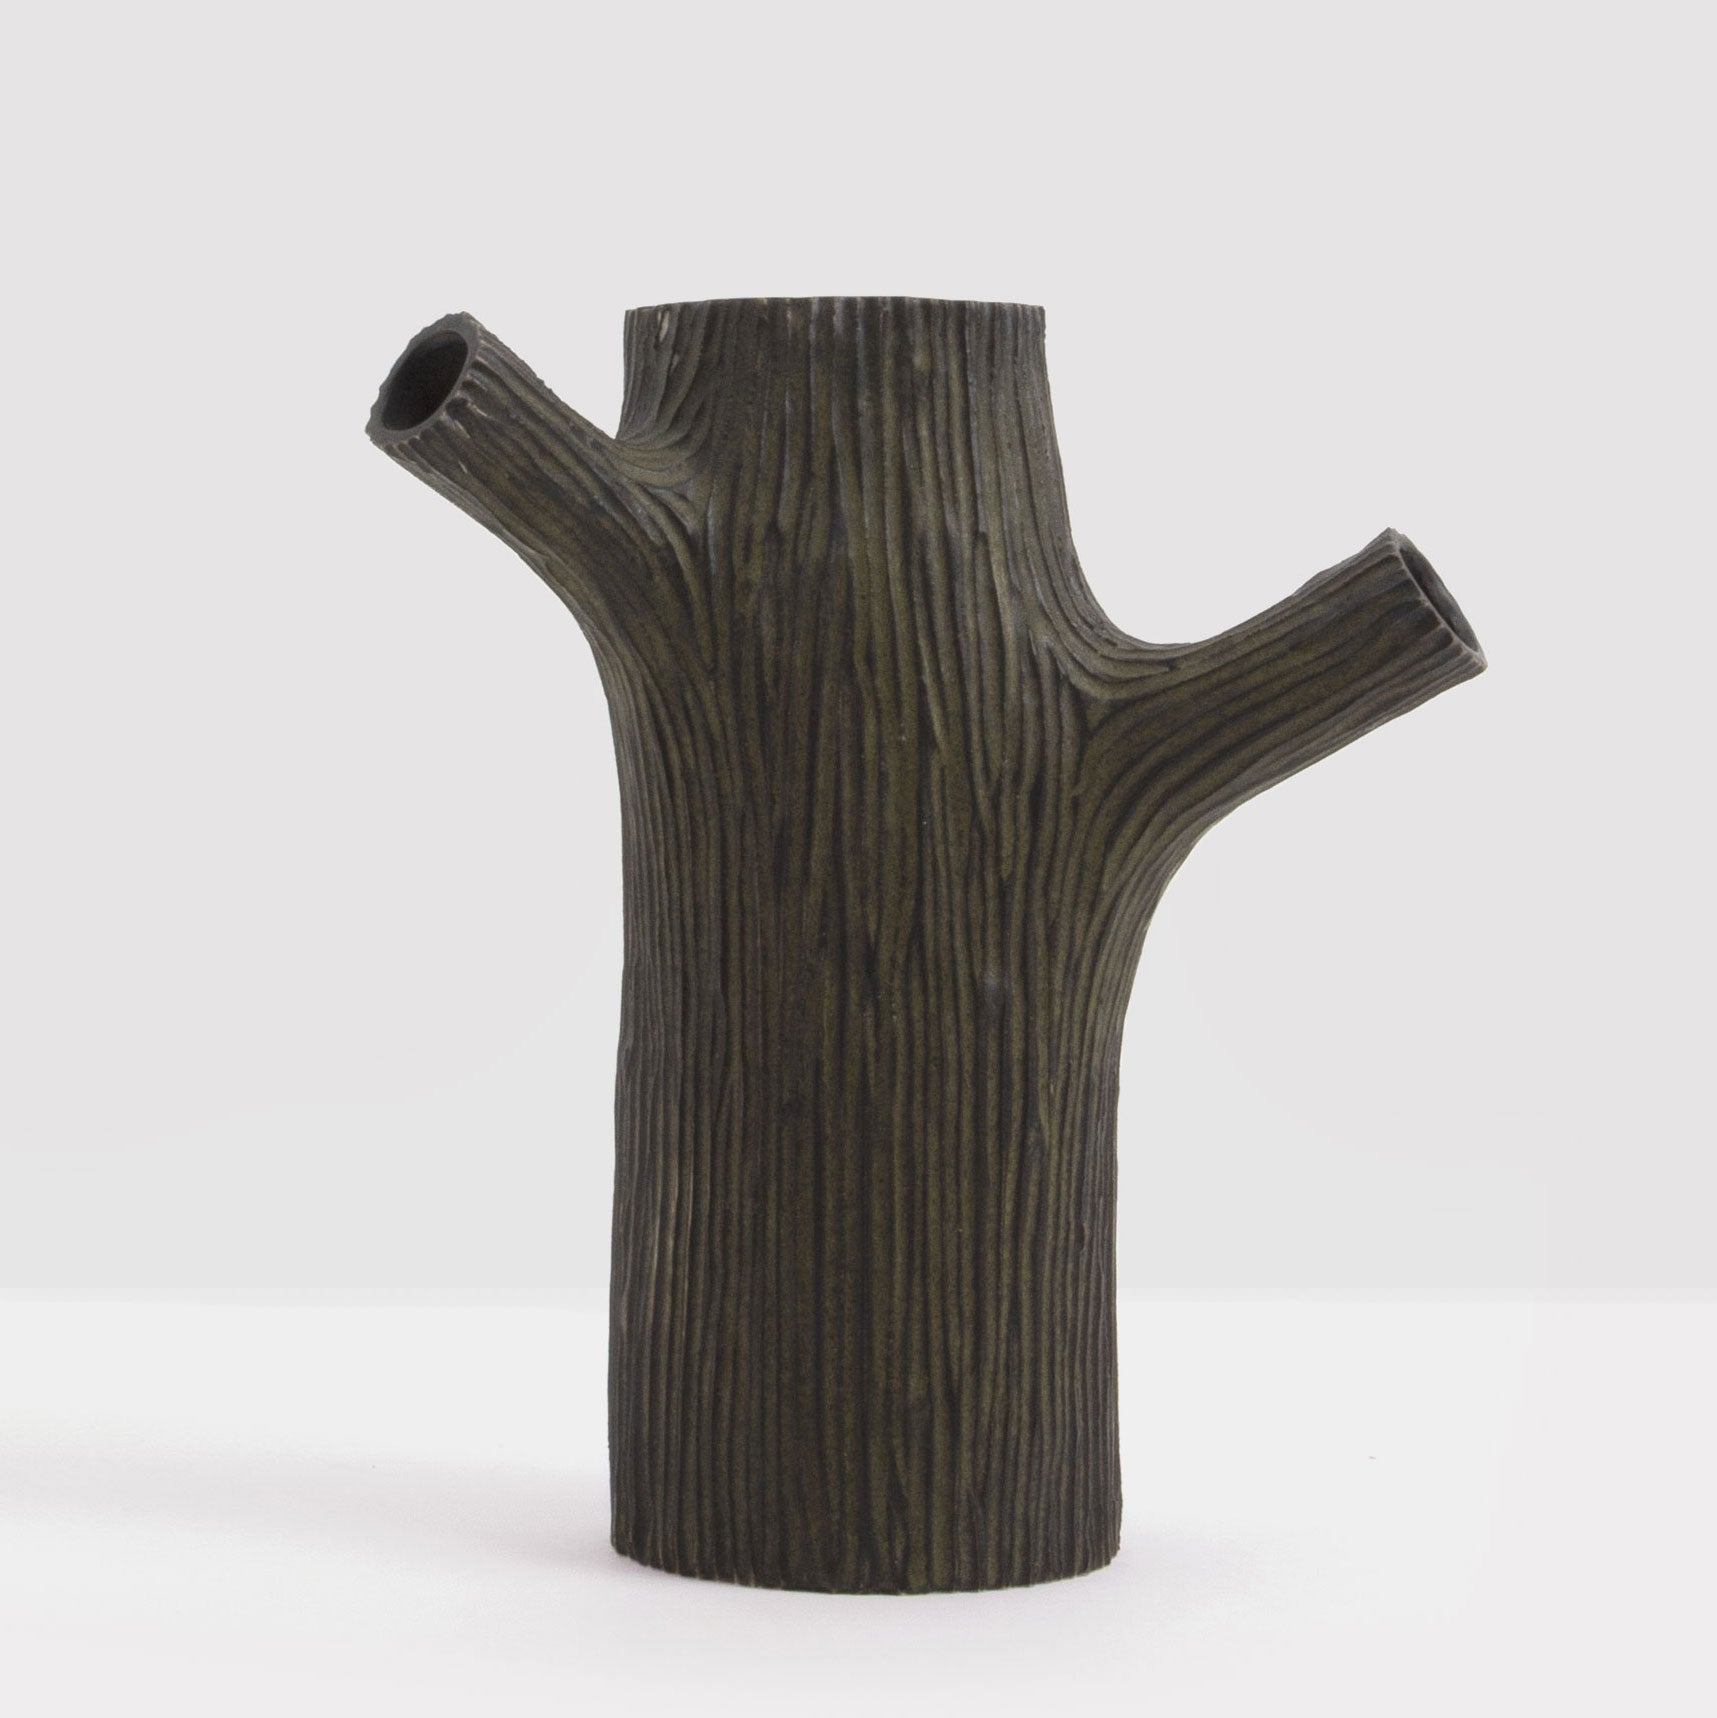 Handmade decorative stump in matt black by Caro Gates